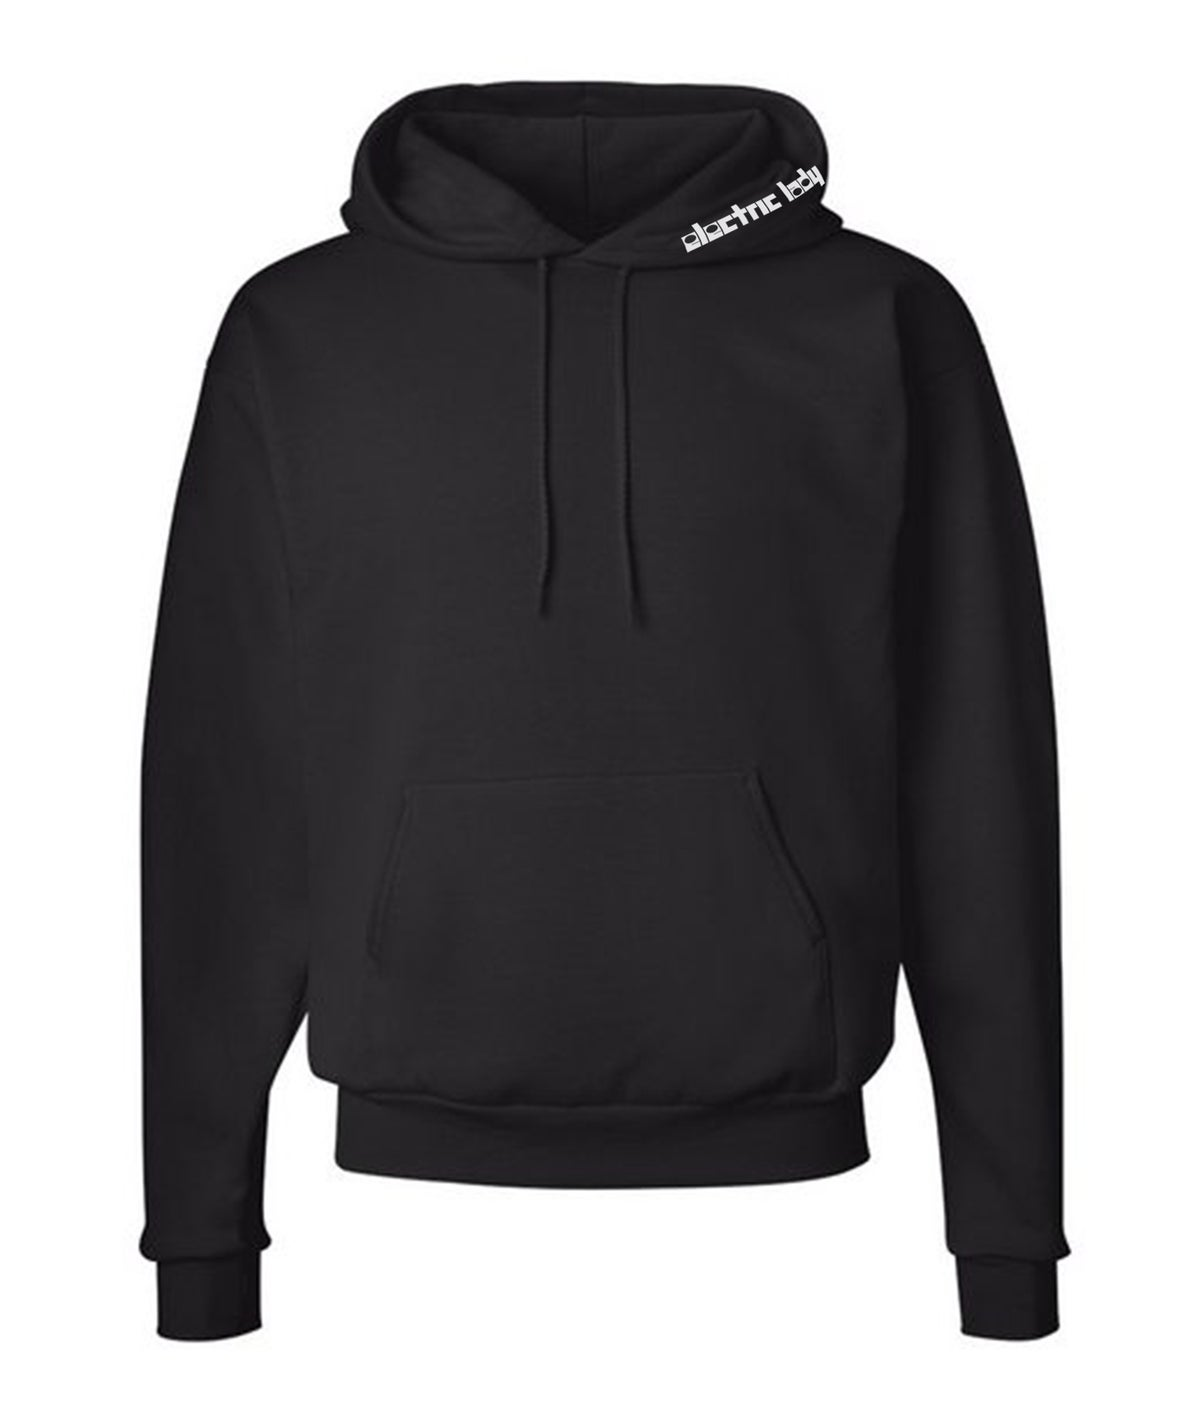 Image of Black Logo Hoodie - ELS 50th Anniversary Collection